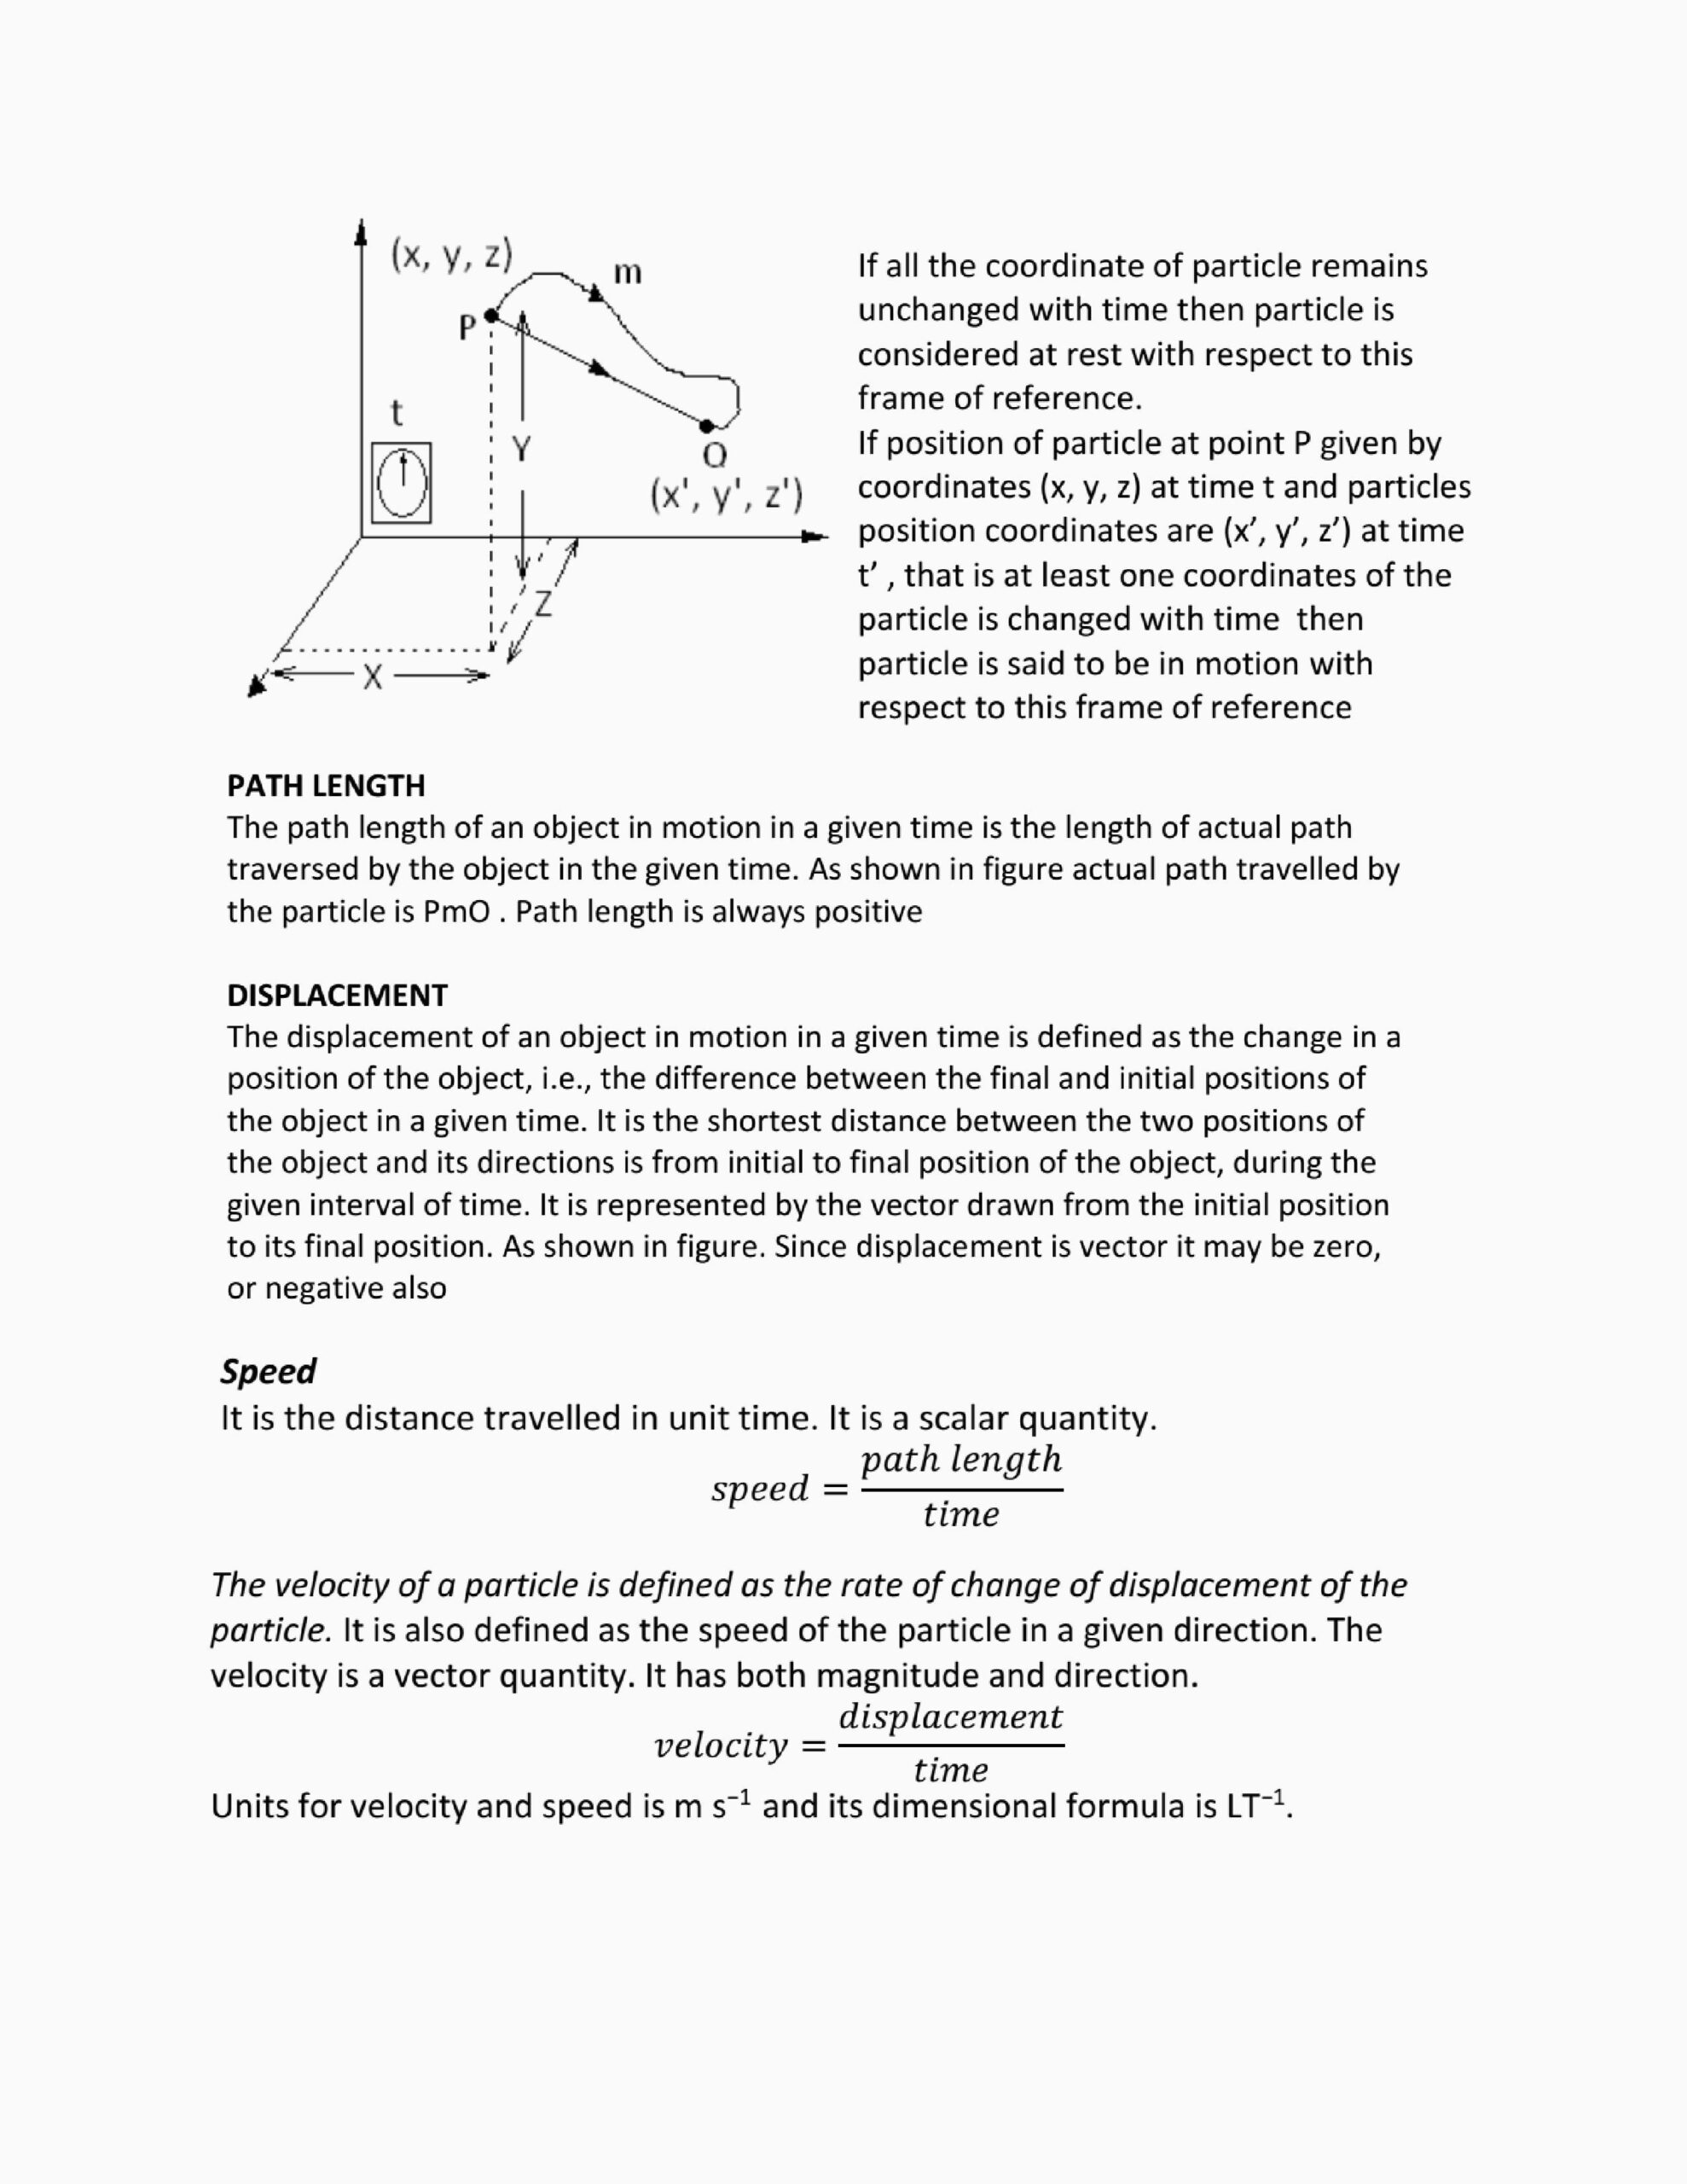 Distance Displacement Speed And Velocity Worksheet Answers